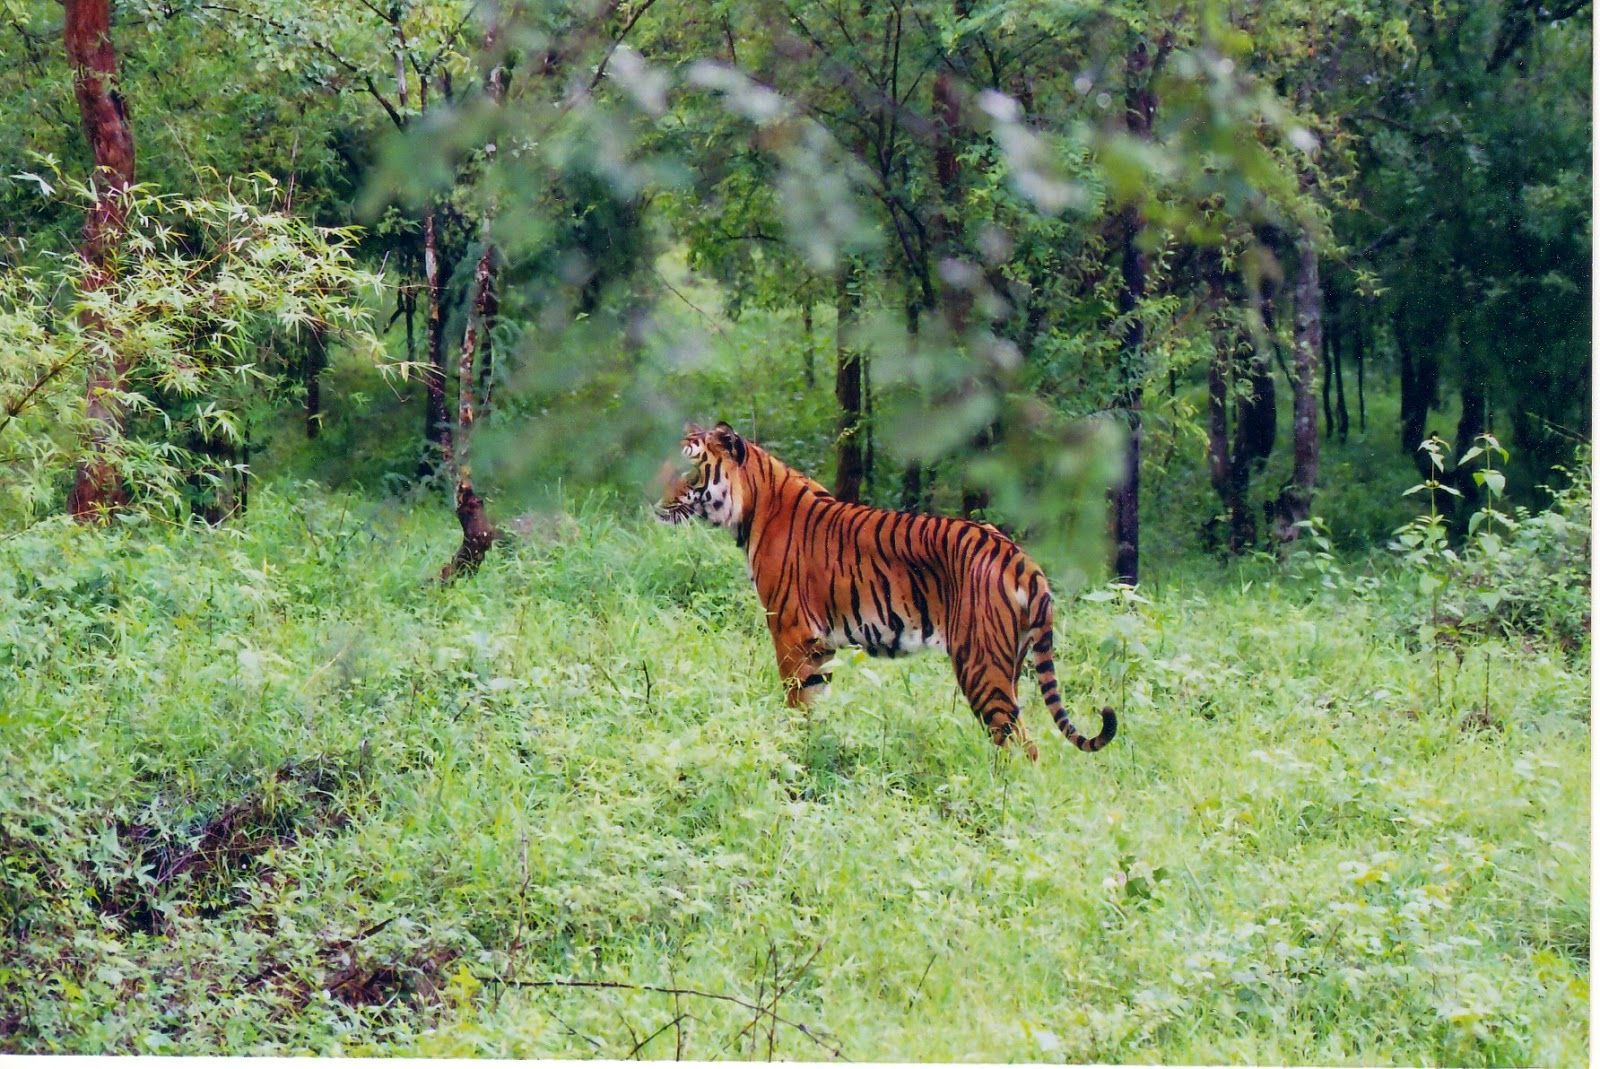 Tiger reserve in India- Jim Corbett national park